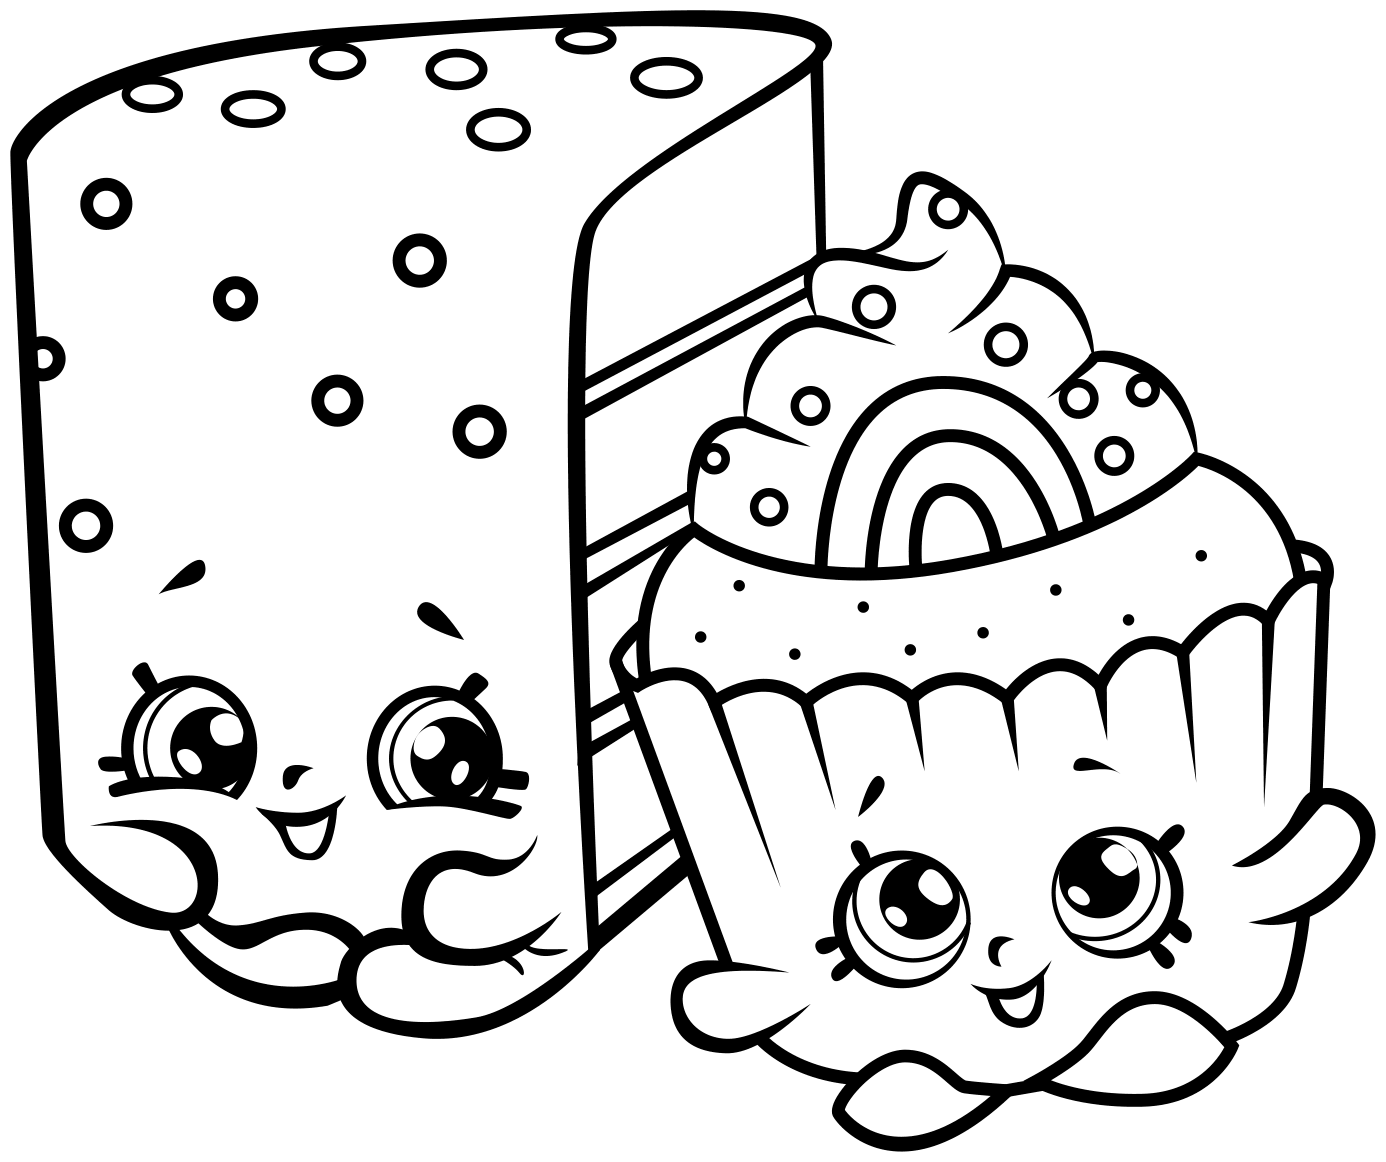 shopkins coloring pages to print free shopkins coloring pages best coloring pages for kids pages coloring free print shopkins to